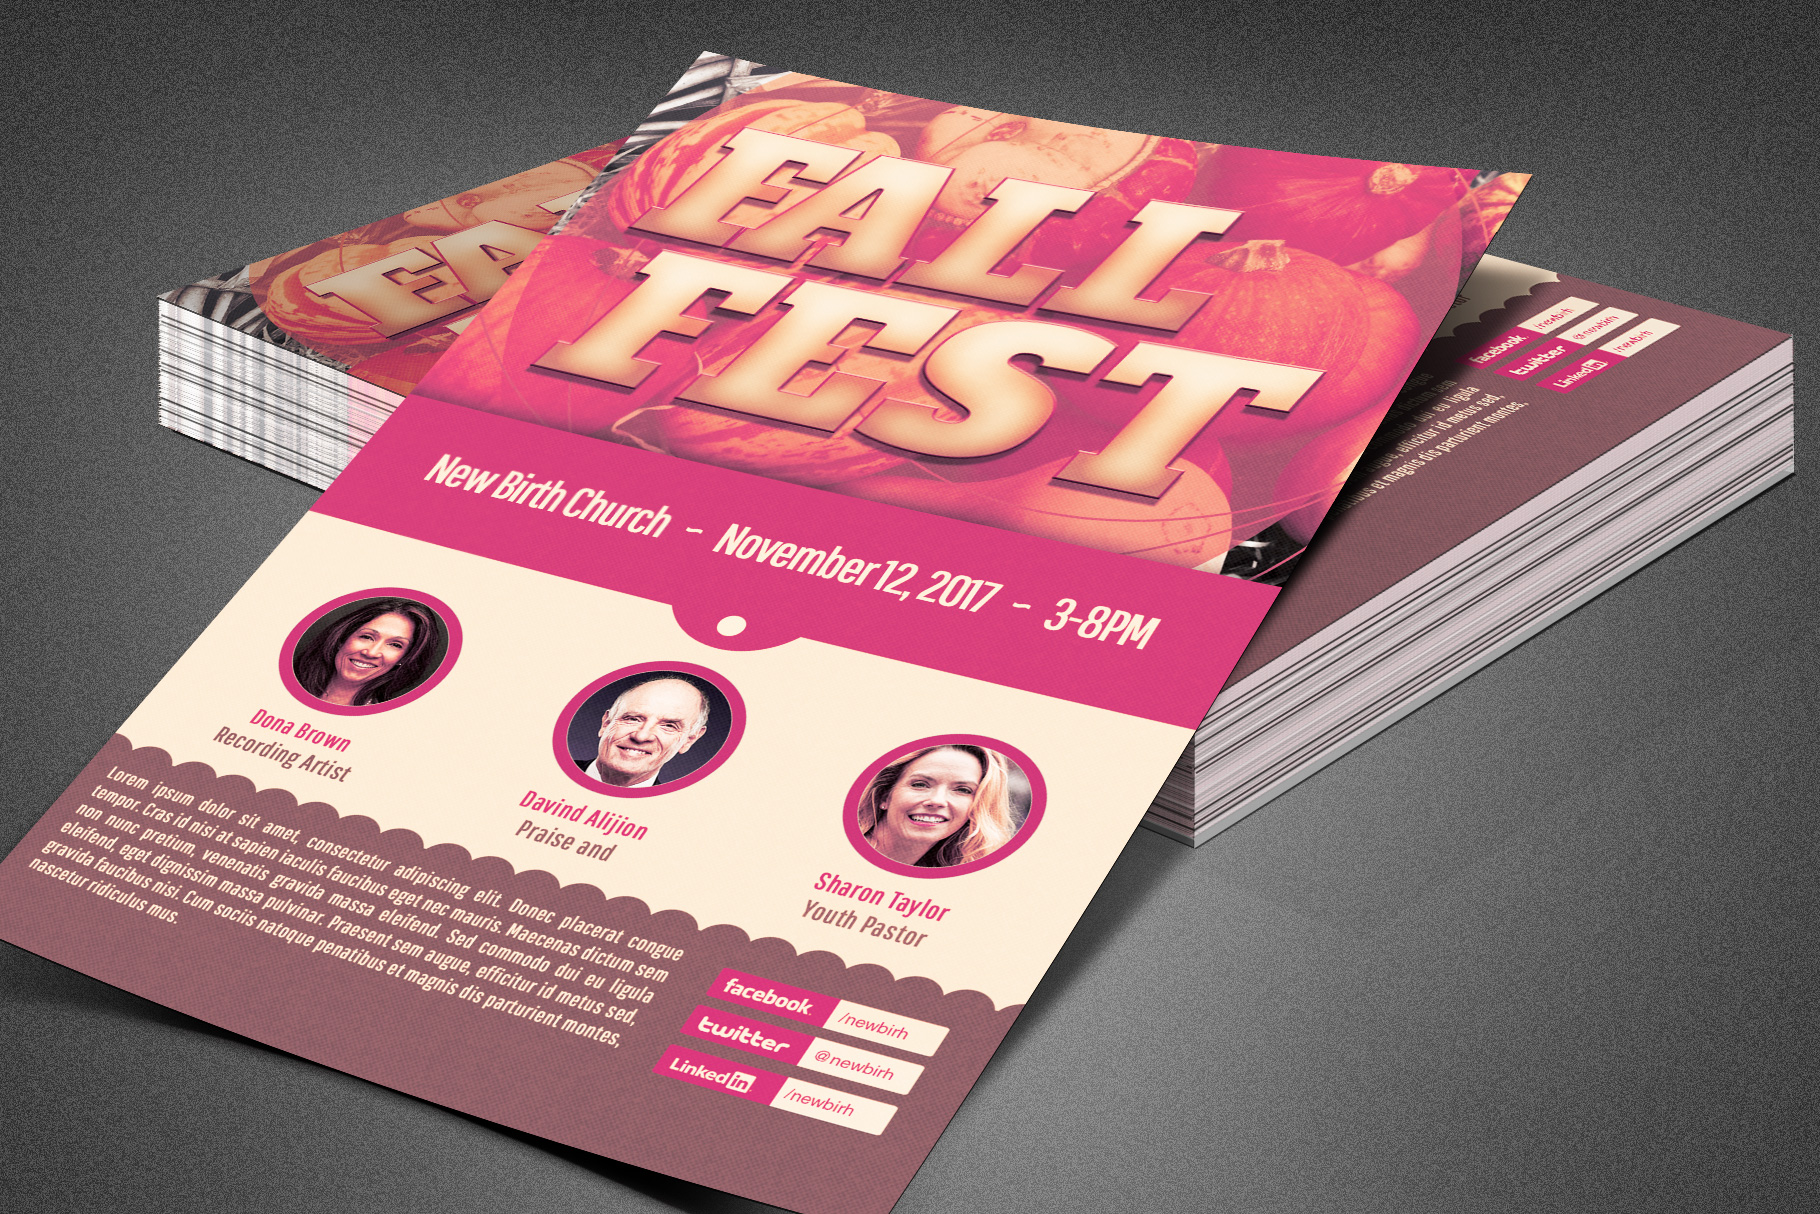 Fall Fest Church Flyer Template example image 5